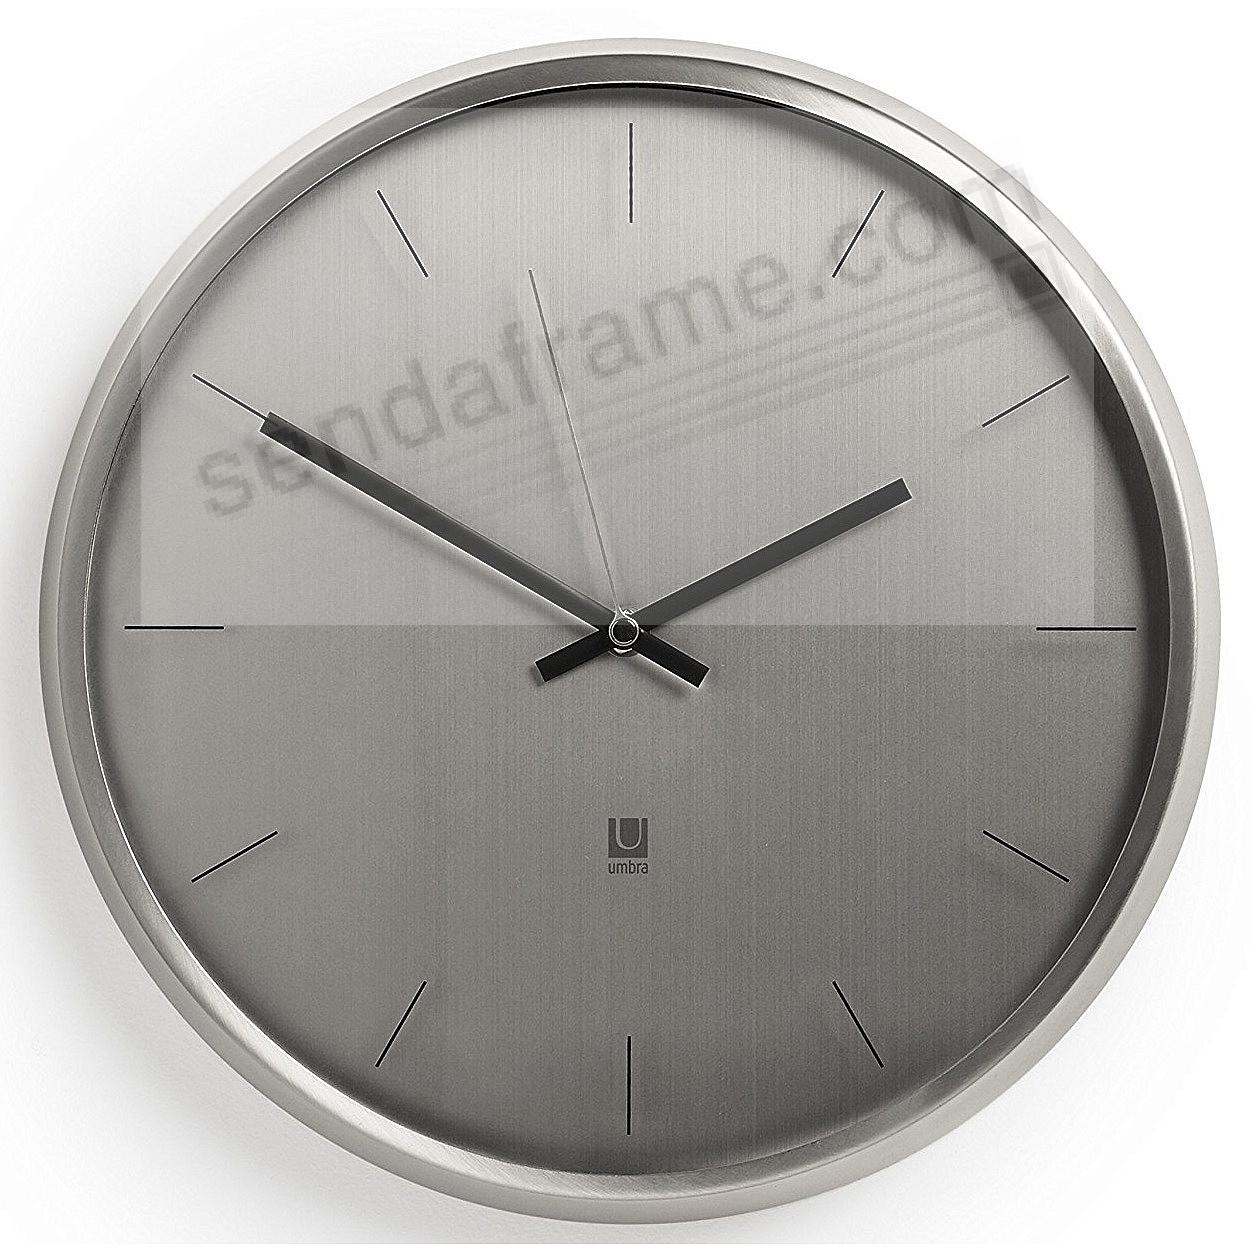 The original META NICKEL WALL CLOCK by Umbra®